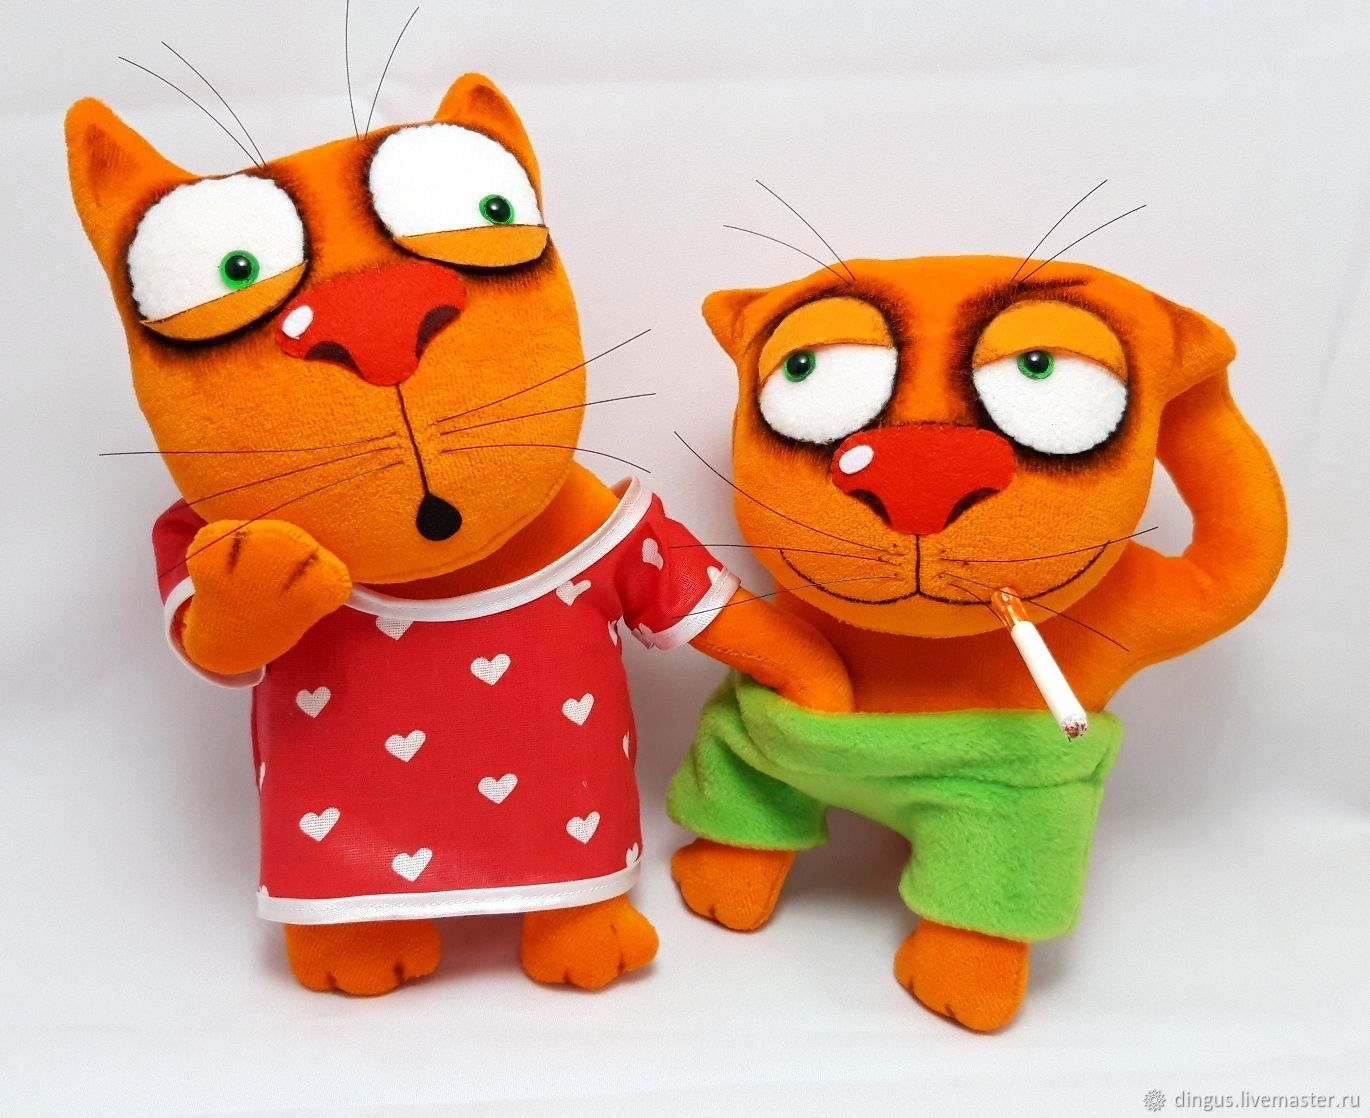 Everything is clear? Soft toys plush red cats Vasya Lozhkina, Stuffed Toys, Moscow,  Фото №1